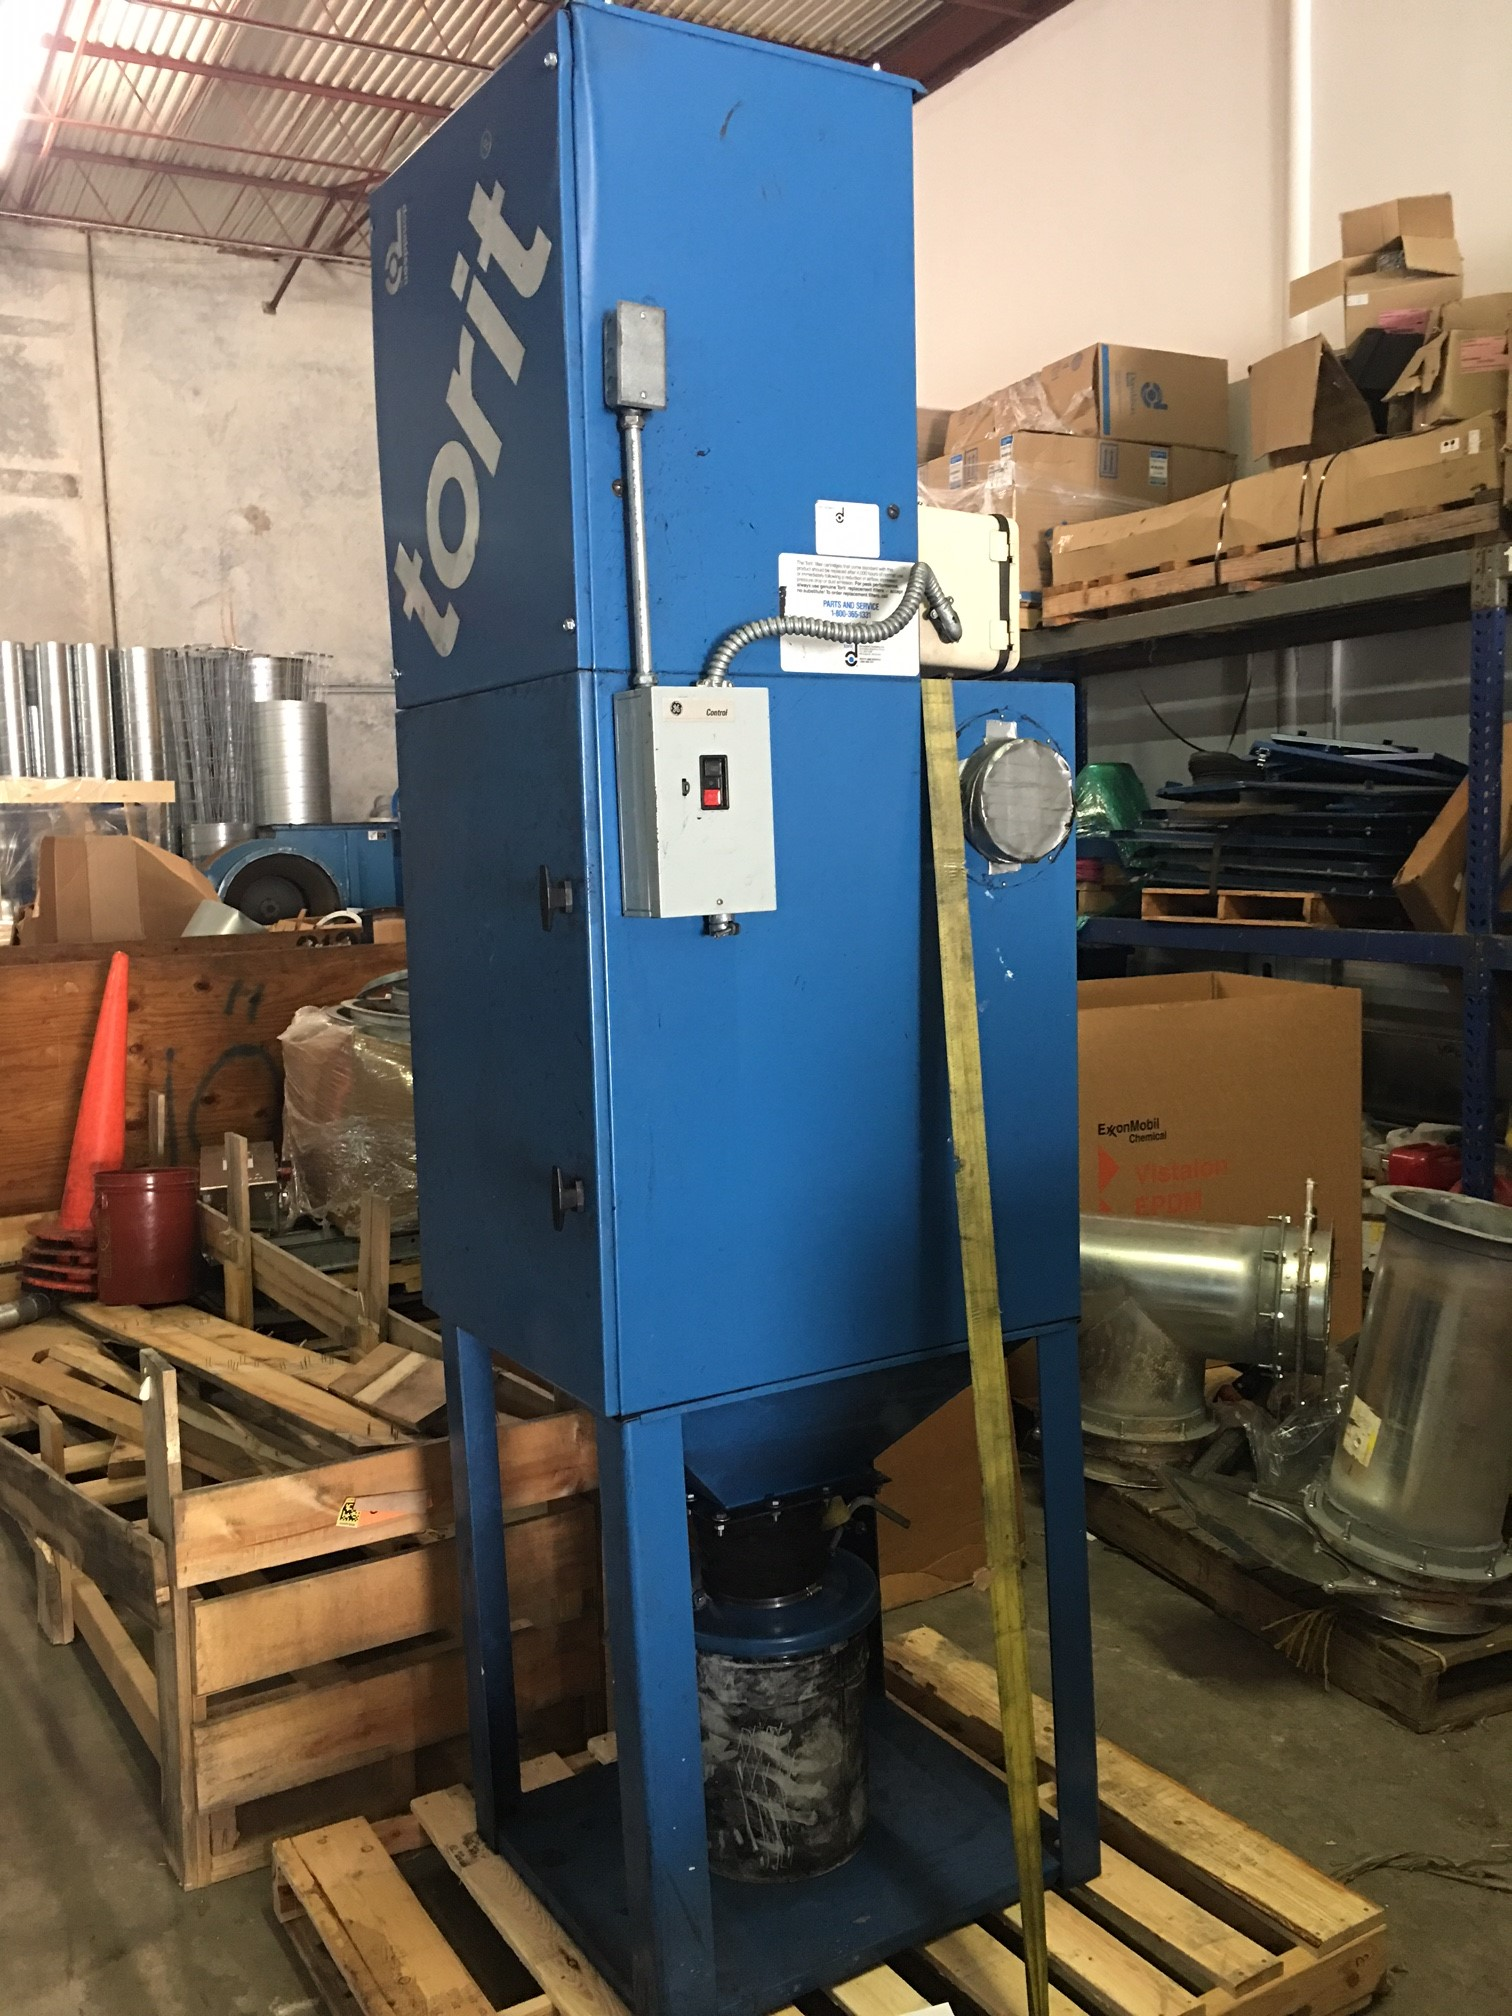 Donaldson Torit VS-1200 (1243 CFM) Used Cartridge Dust Collector-0